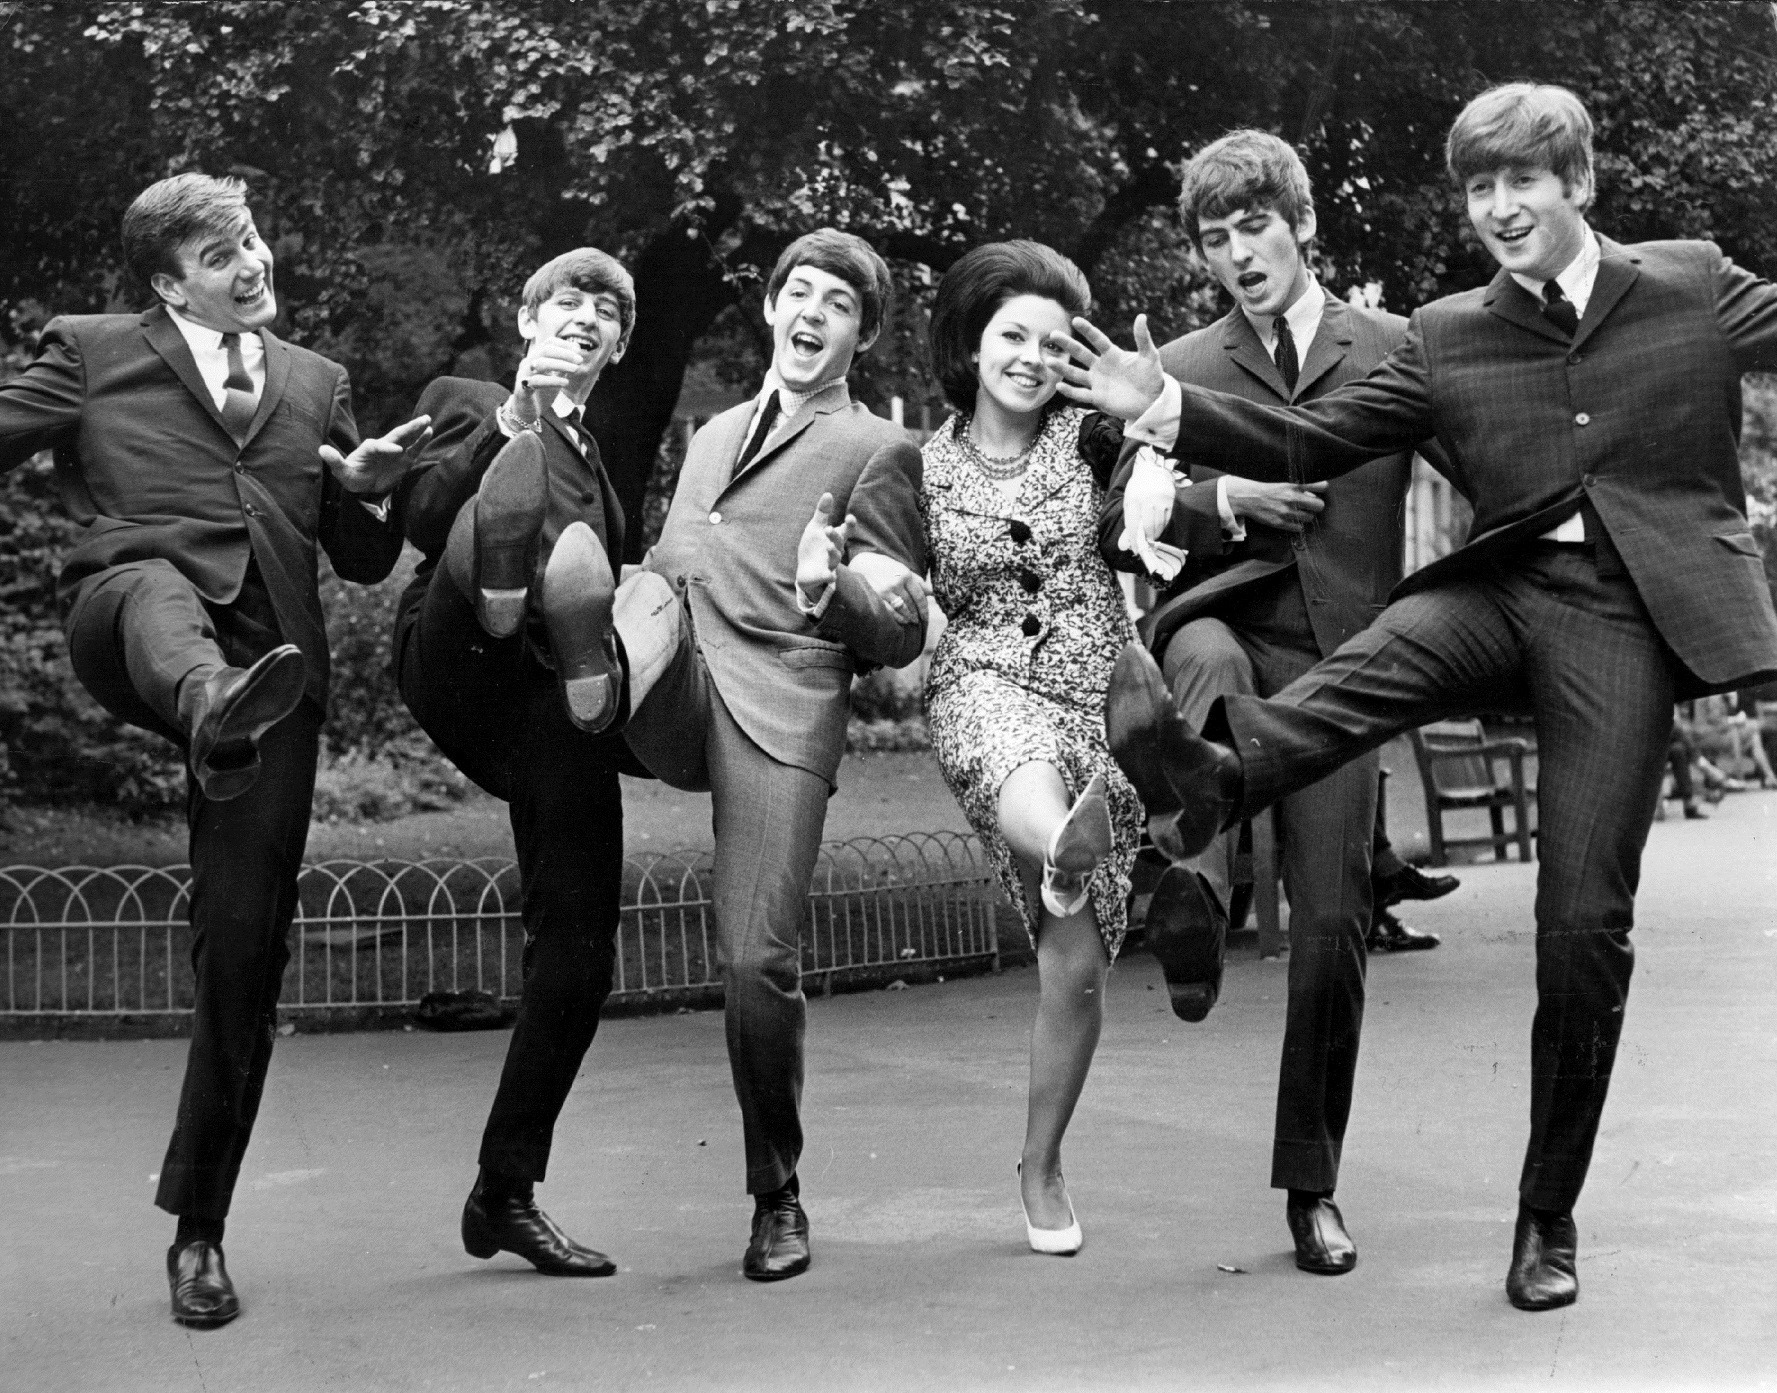 The Beatles High kicking winners of the Melody Maker poll awards for 1963